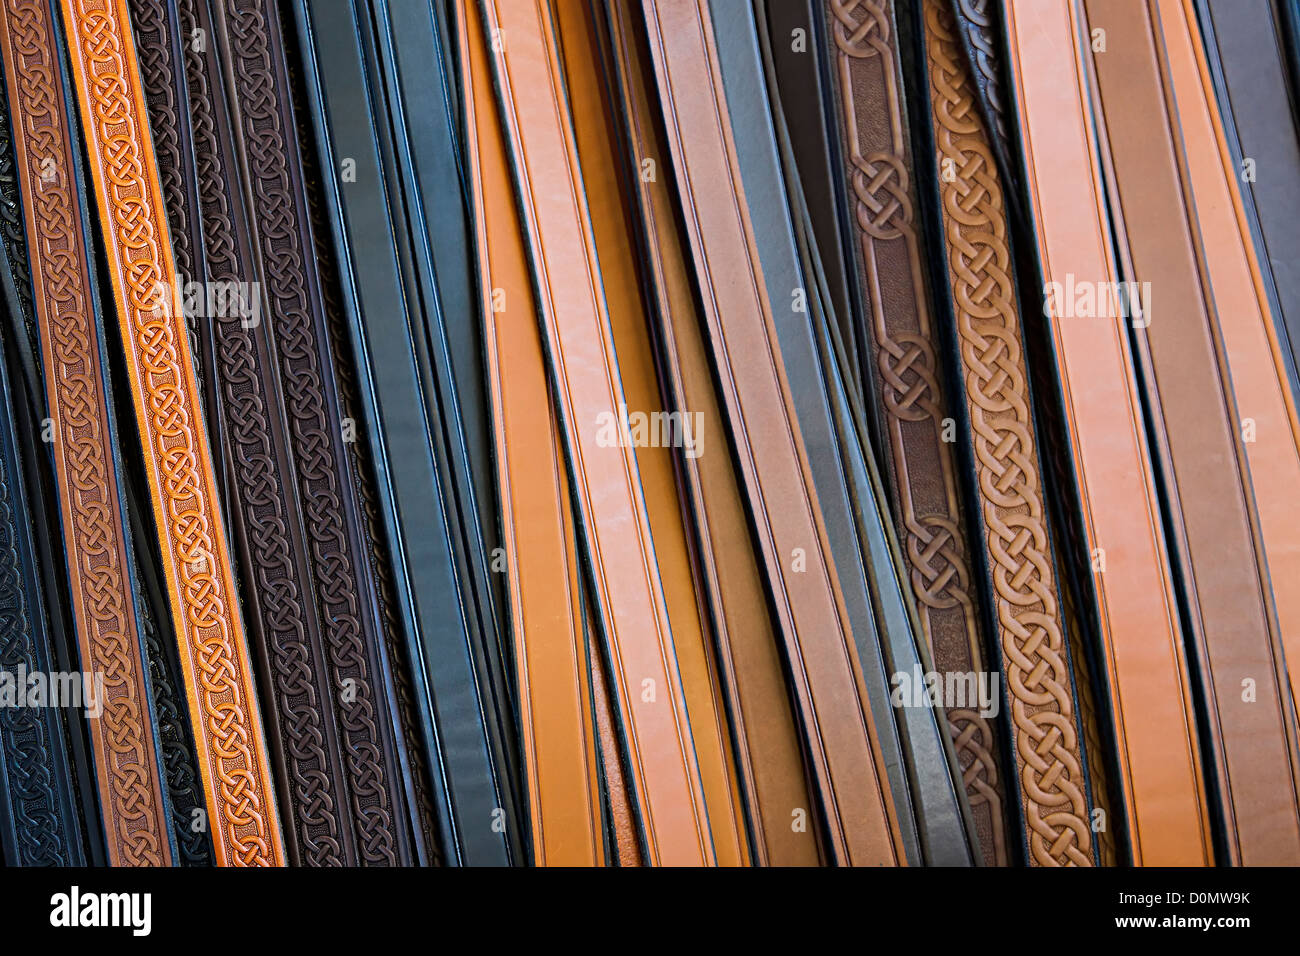 Leather belts on display and sale in outdoor market, UK - Stock Image